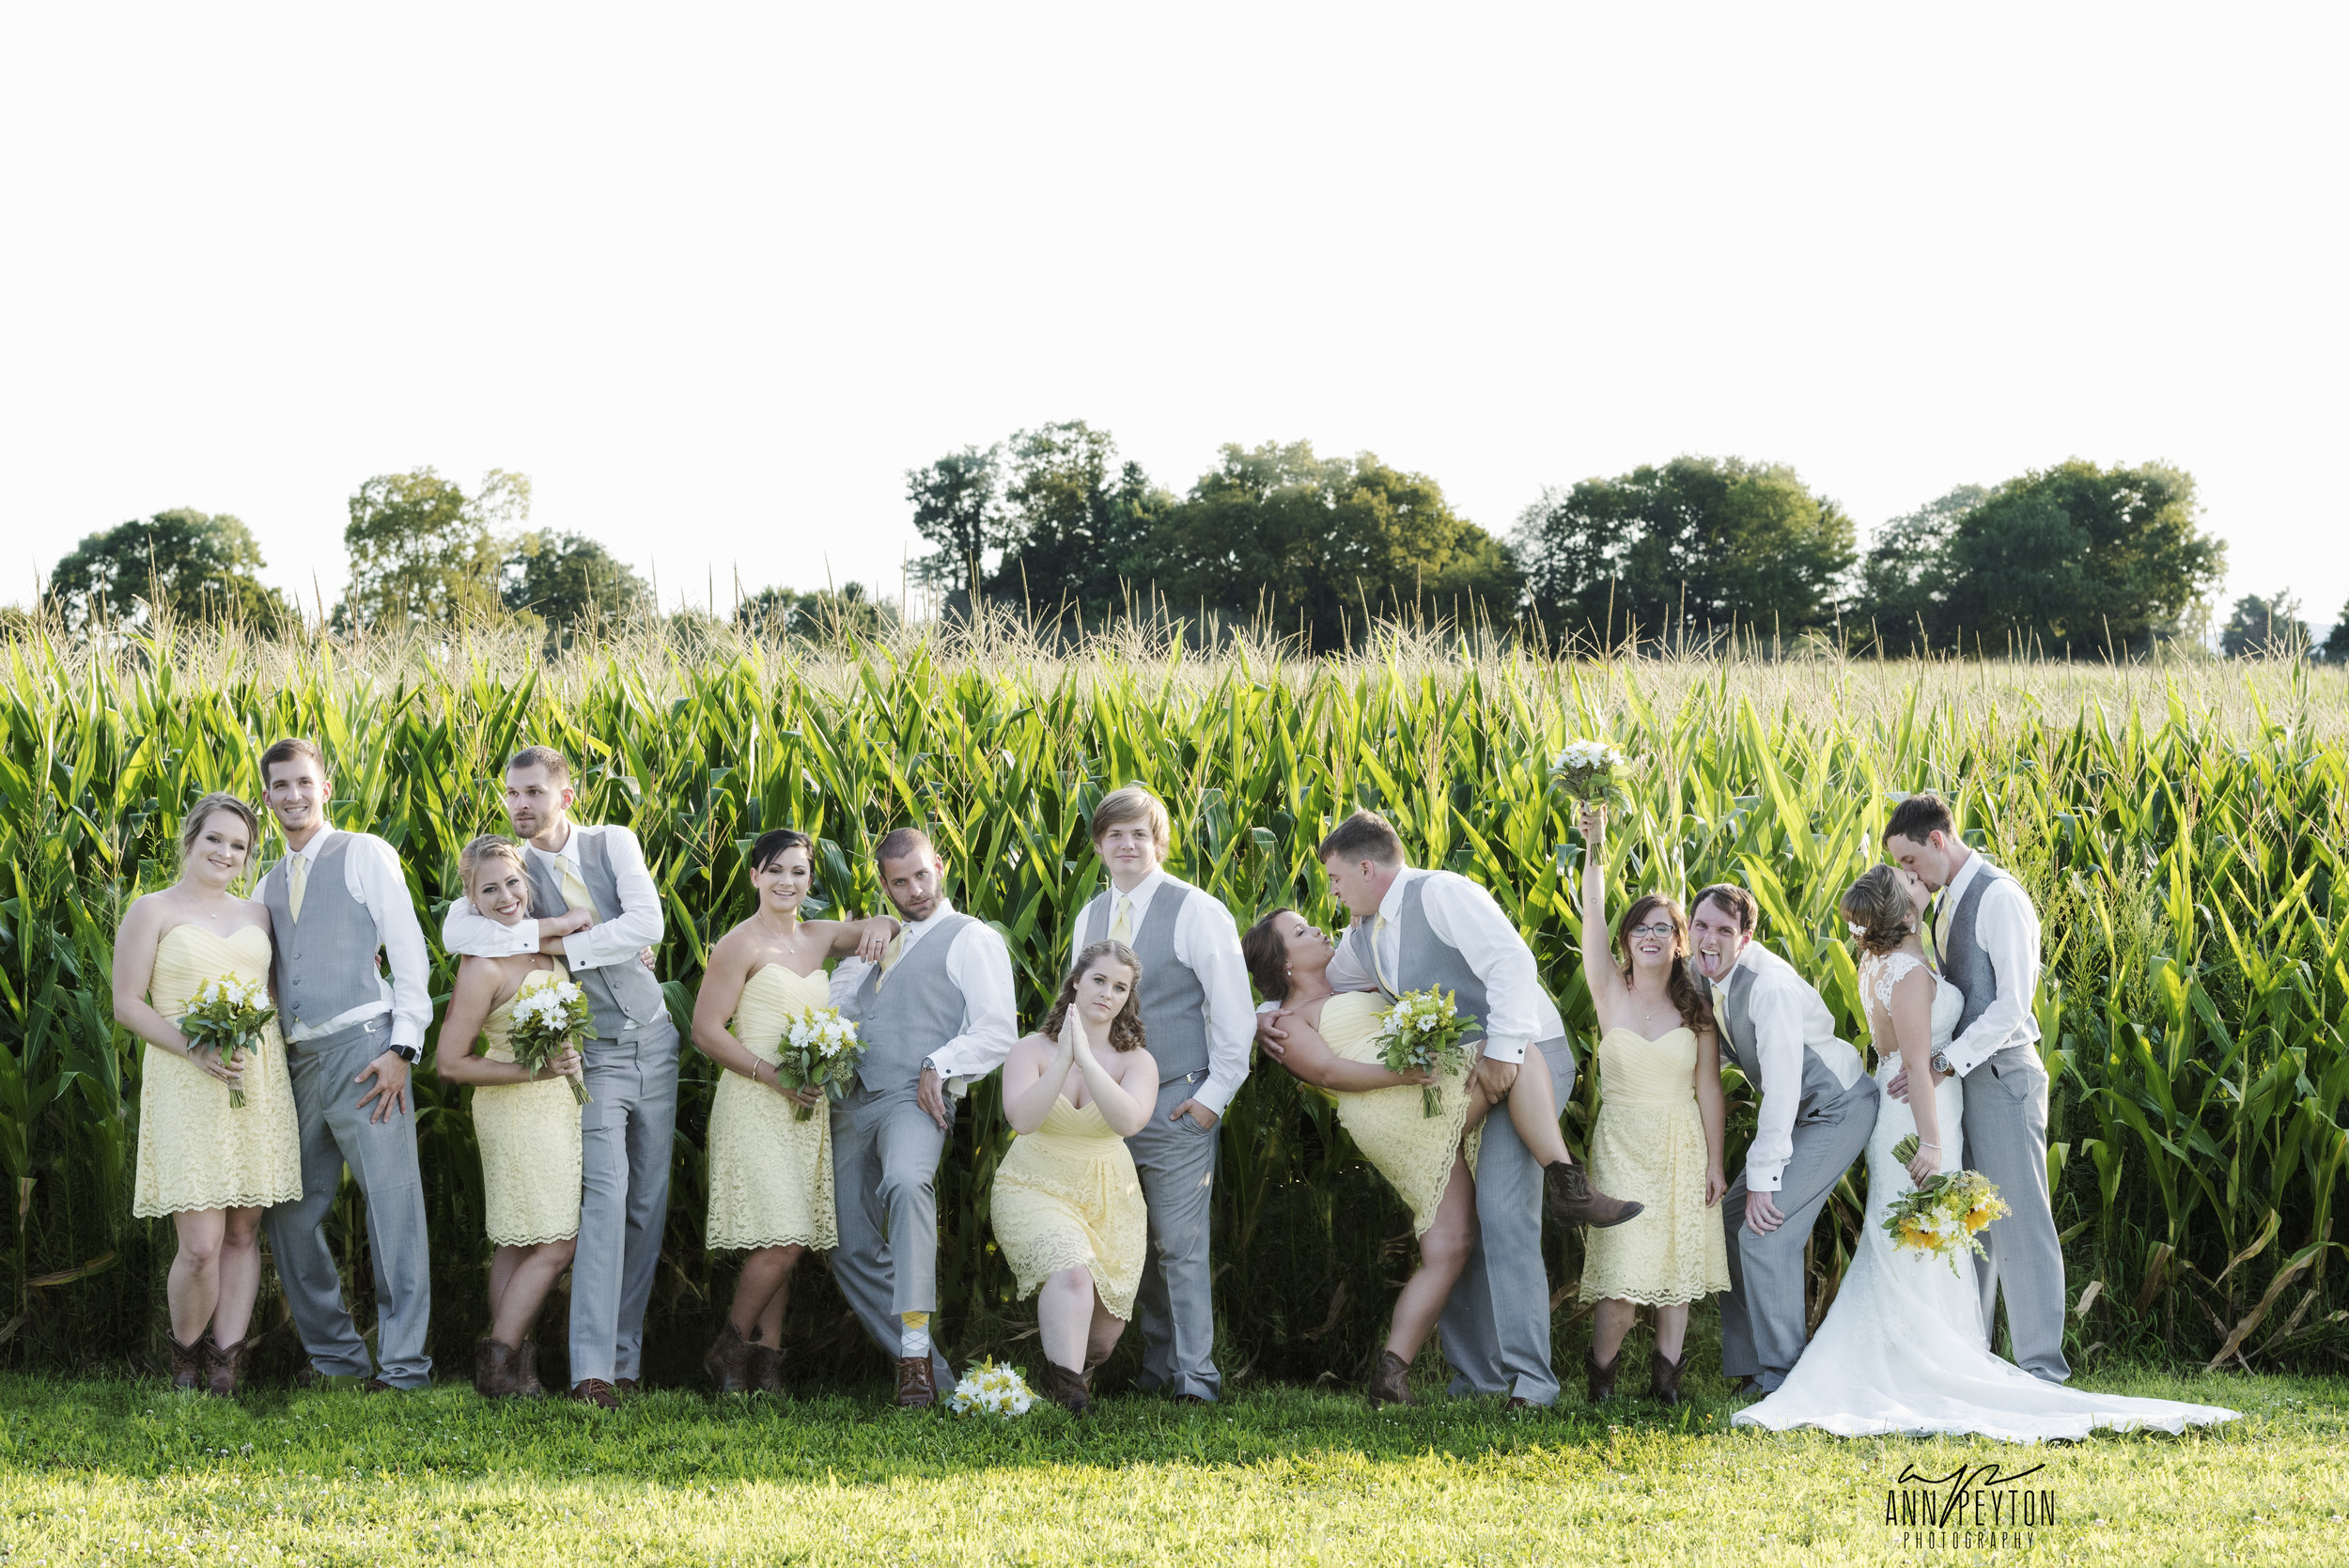 Britany and Travis with bridal party by cornfield fun pose